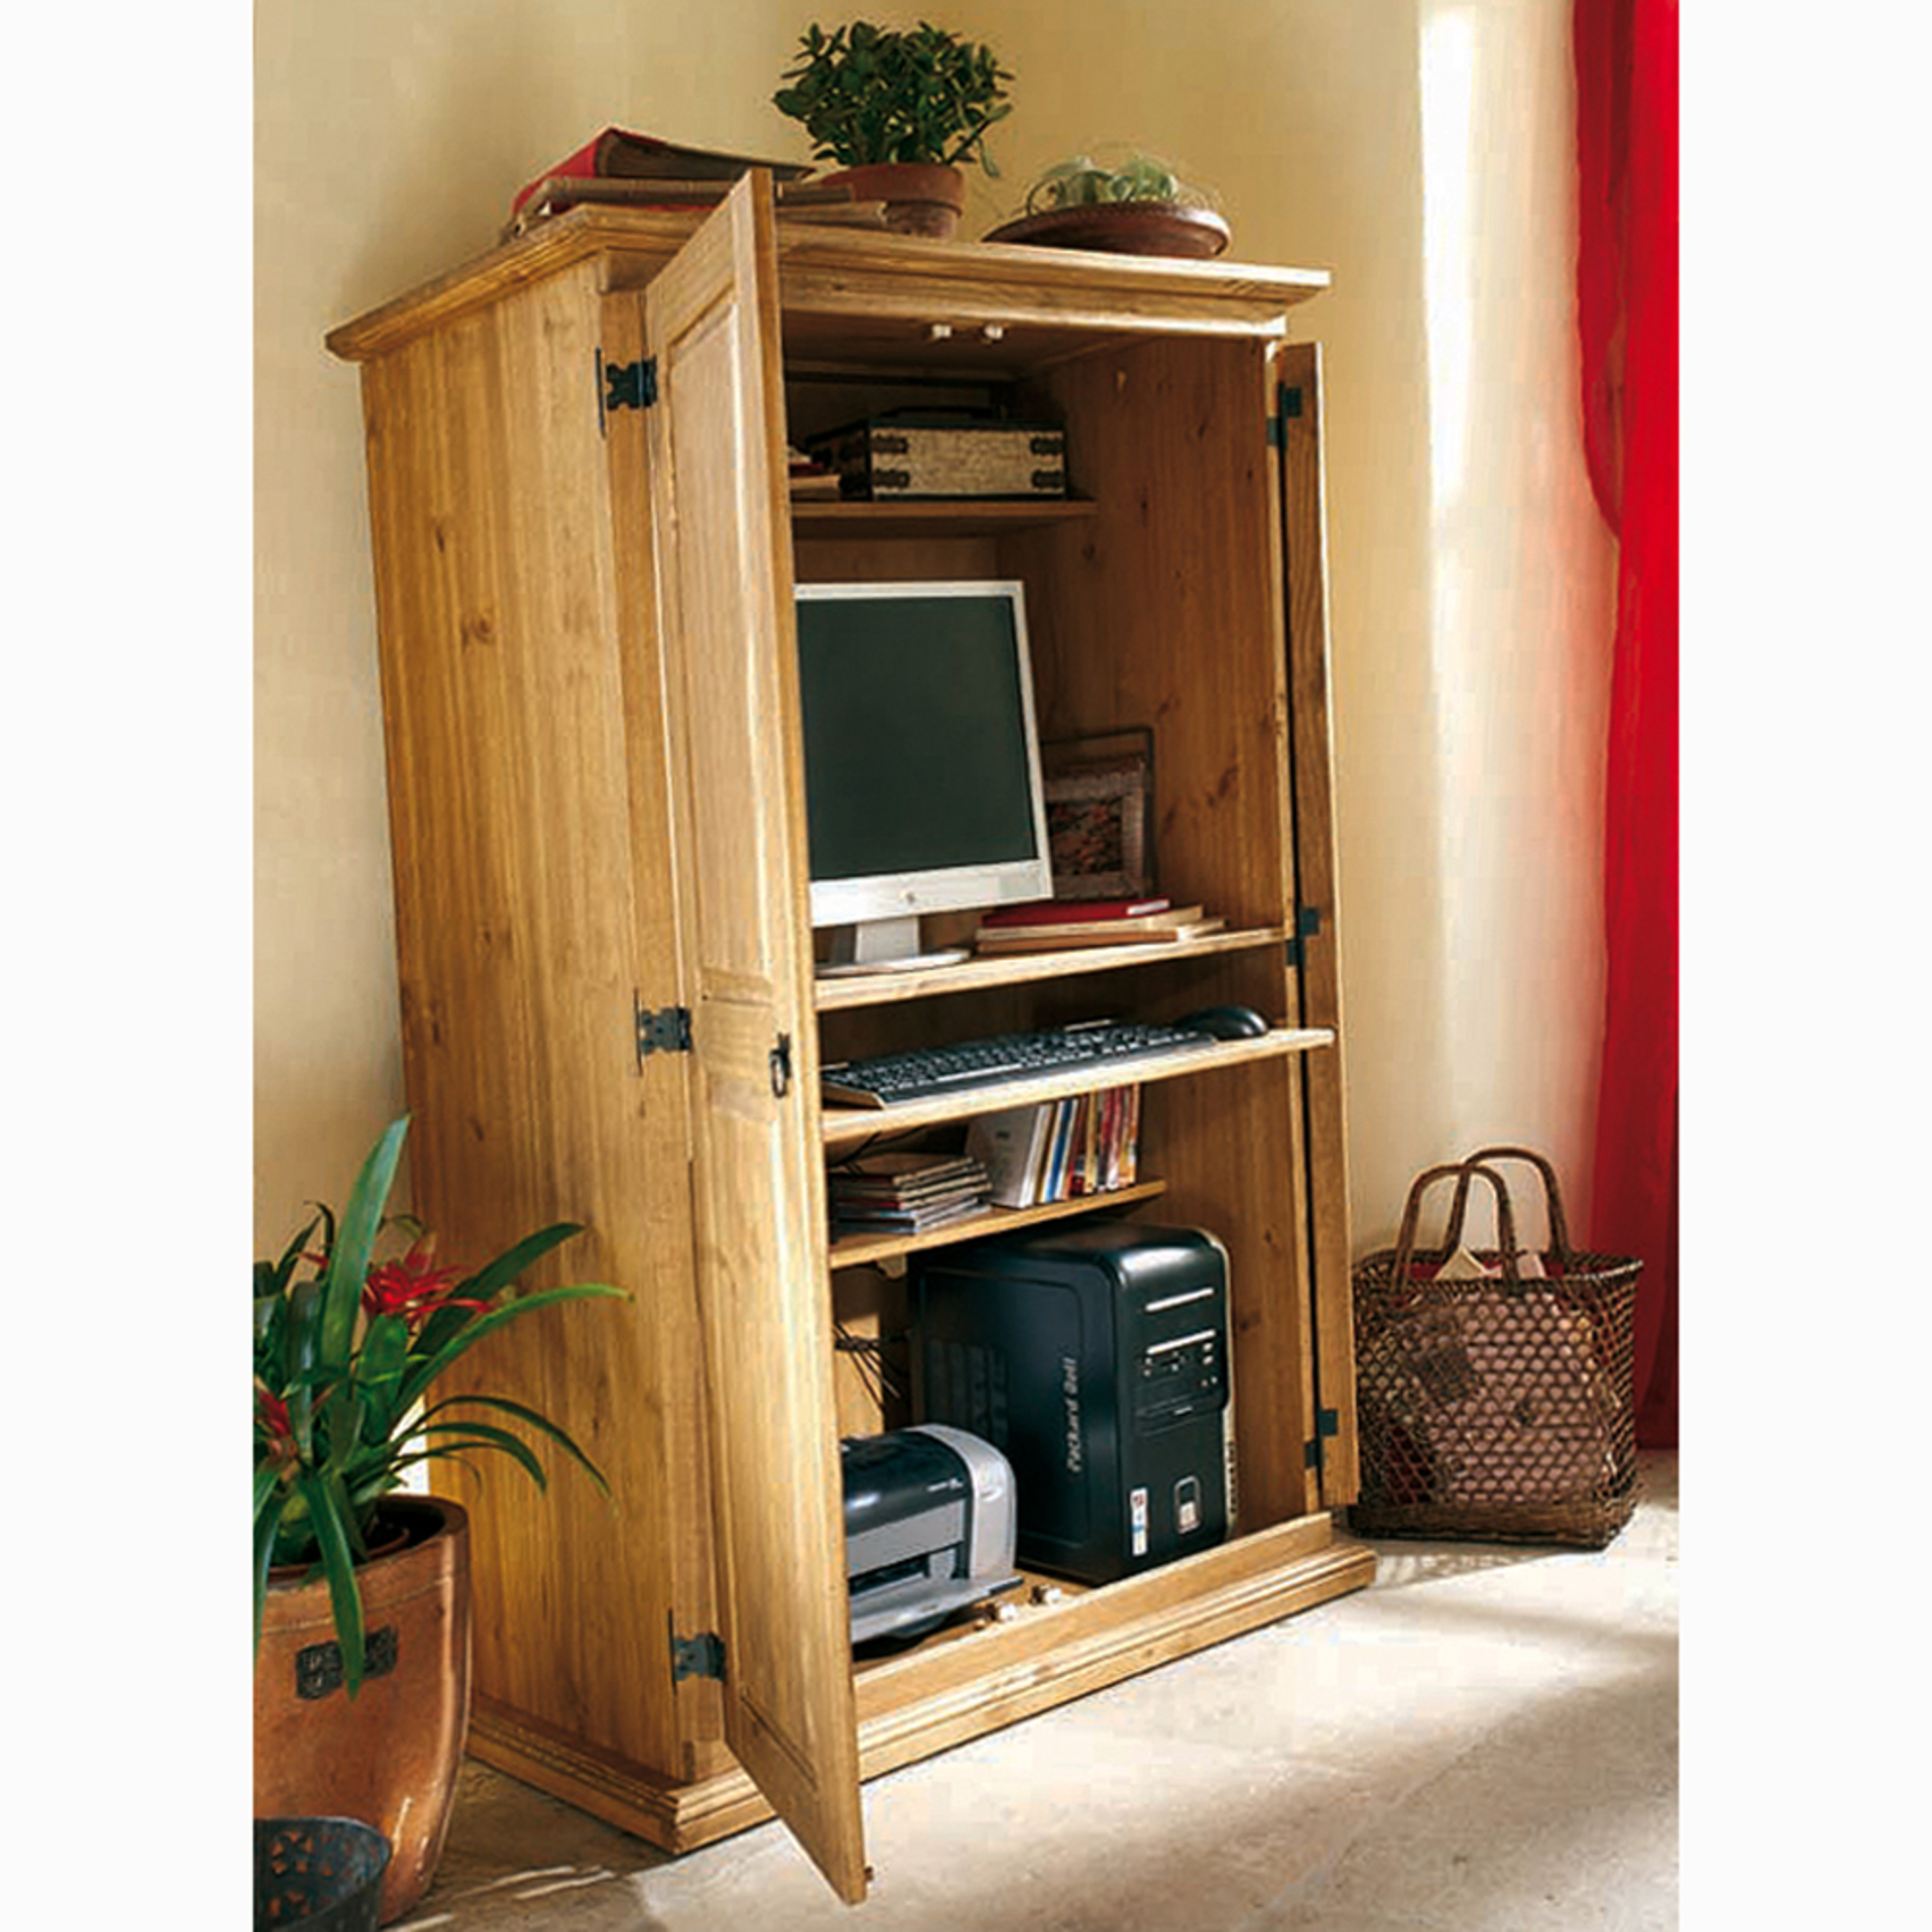 Meuble tv ou armoire micro informatique el patio for Meuble informatique porte coulissante